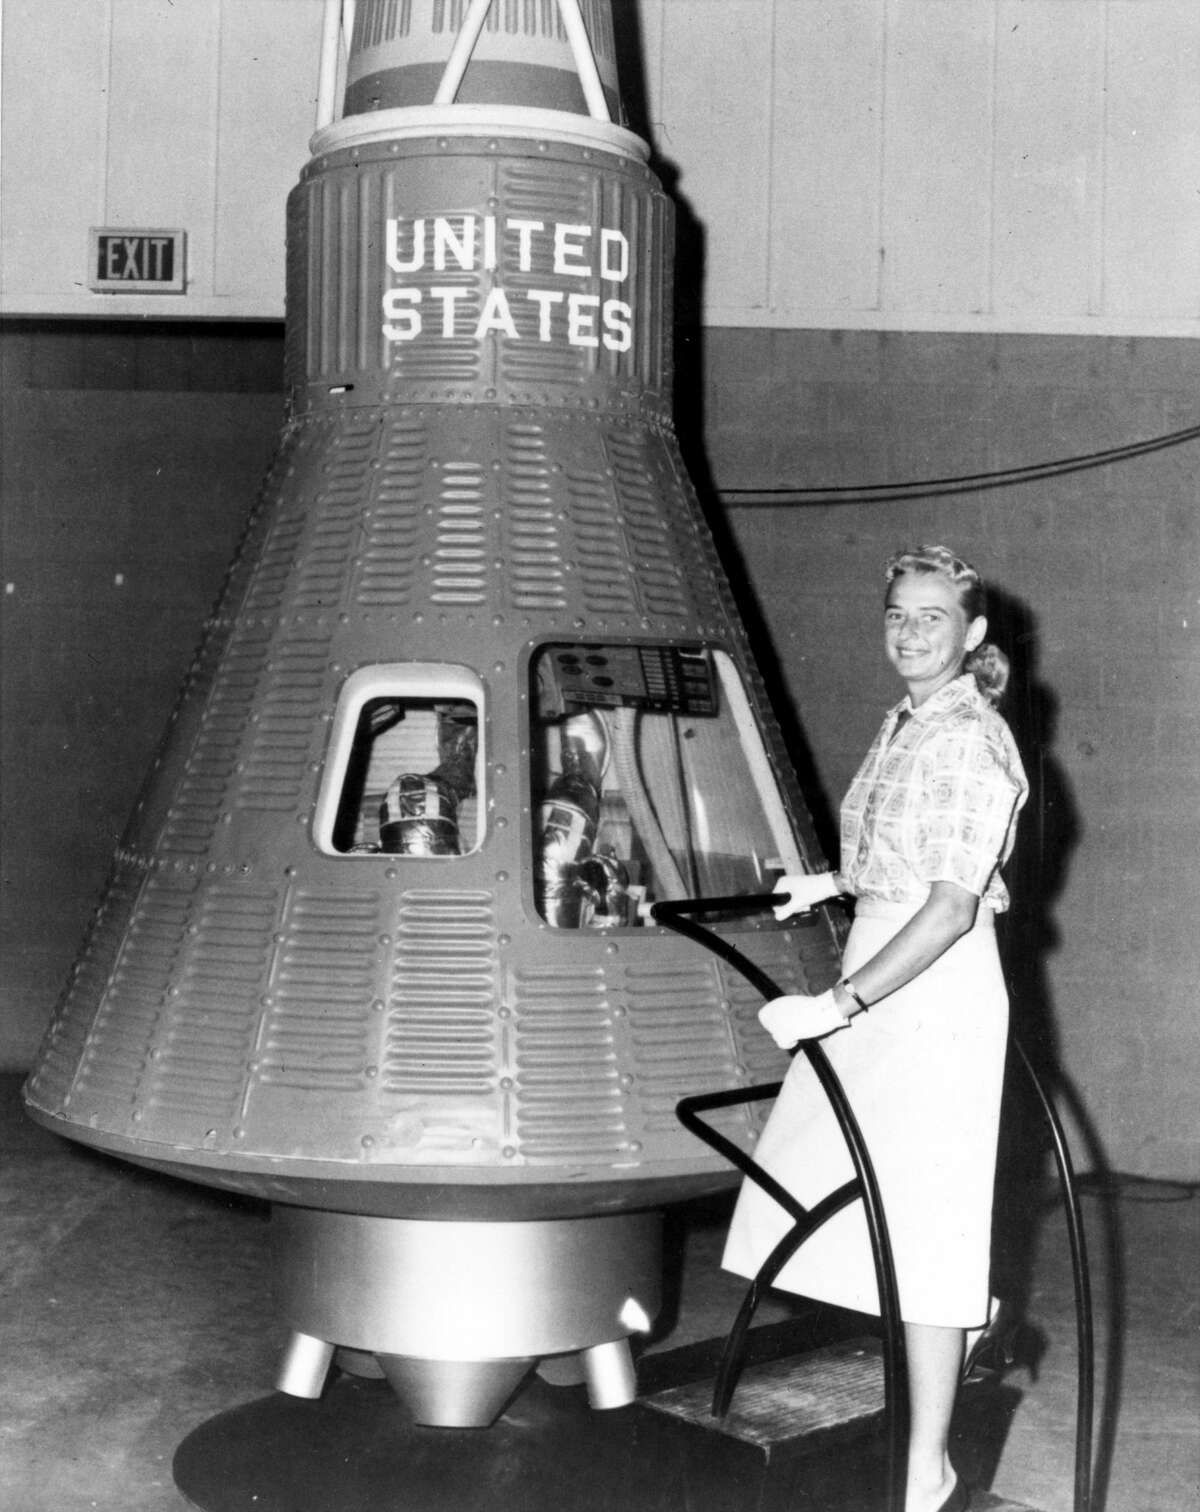 Jerrie Cobb poses next to a Mercury spaceship capsule. Although she never flew in space, Cobb, along with twenty-four other women, underwent physical tests similar to those taken by the Mercury astronauts with the belief that she might become an astronaut trainee. All the women who participated in the program, known as First Lady Astronaut Trainees, were skilled pilots. Dr. Randy Lovelace, a NASA scientist who had conducted the official Mercury program physicals, administered the tests at his private clinic without official NASA sanction. Cobb passed all the training exercises, ranking in the top 2% of all astronaut candidates of both genders. While she was sworn in as a consultant to Administrator James Webb on the issue of women in space, mounting political pressure and internal opposition lead NASA to restrict its official astronaut training program to men despite campaigning by the thirteen finalists of the FLAT program. After three years, Cobb left NASA for the jungles of the Amazon, where she has spent four decades as a solo pilot delivering food, medicine, and other aid to the indigenous people. She has received the Amelia Earhart Medal, the Harmon Trophy, the Pioneer Woman Award, the Bishop Wright Air Industry Award, and many other decorations for her tireless years of humanitarian service.